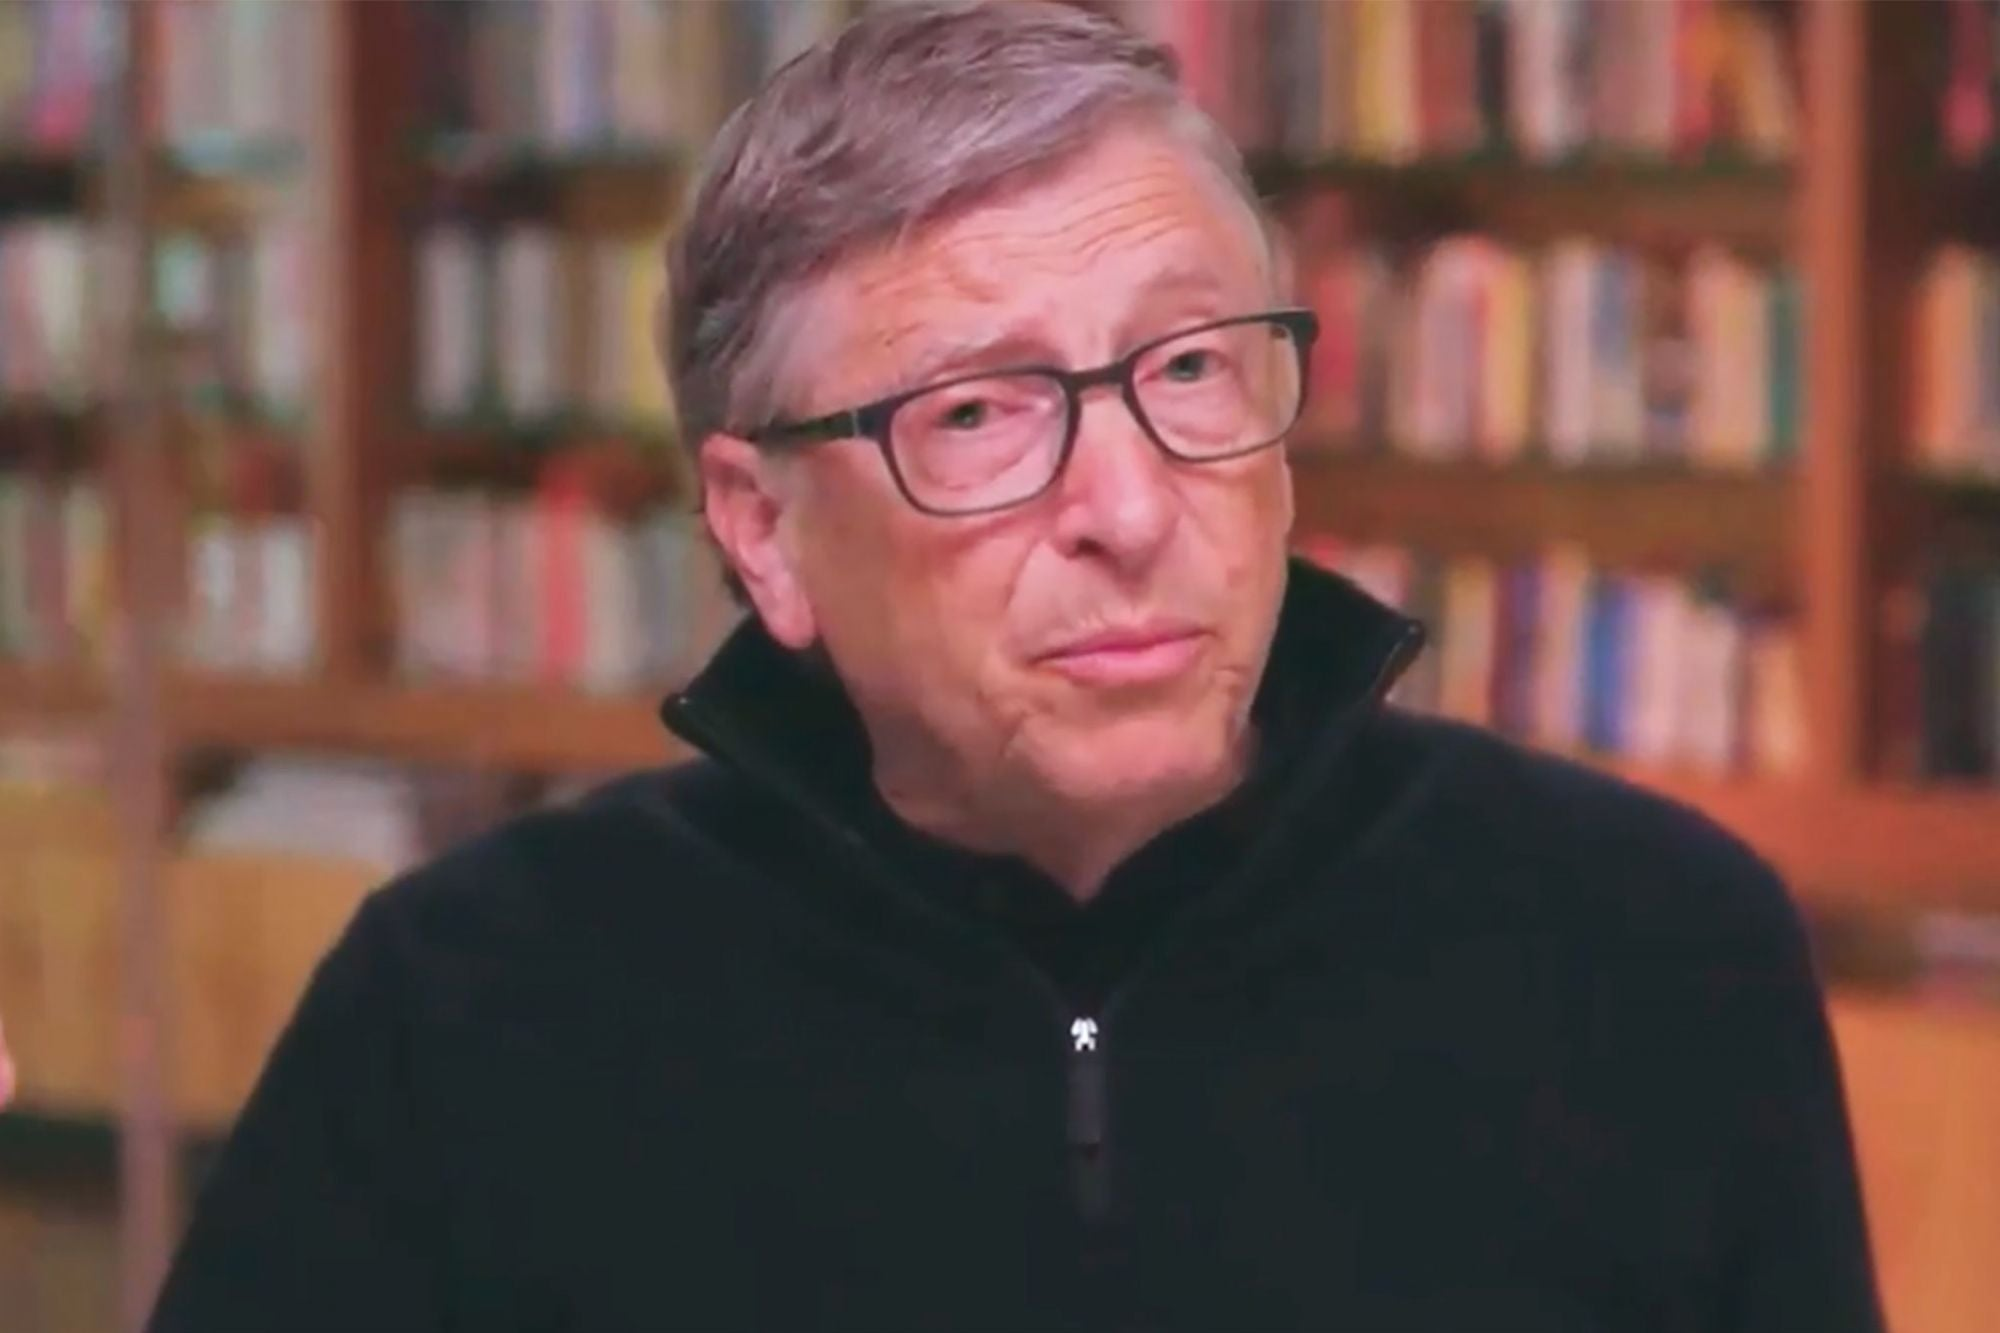 Bill Gates Warns That a Coronavirus-like Outbreak Will Probably Happen 'Every 20 Years or So'